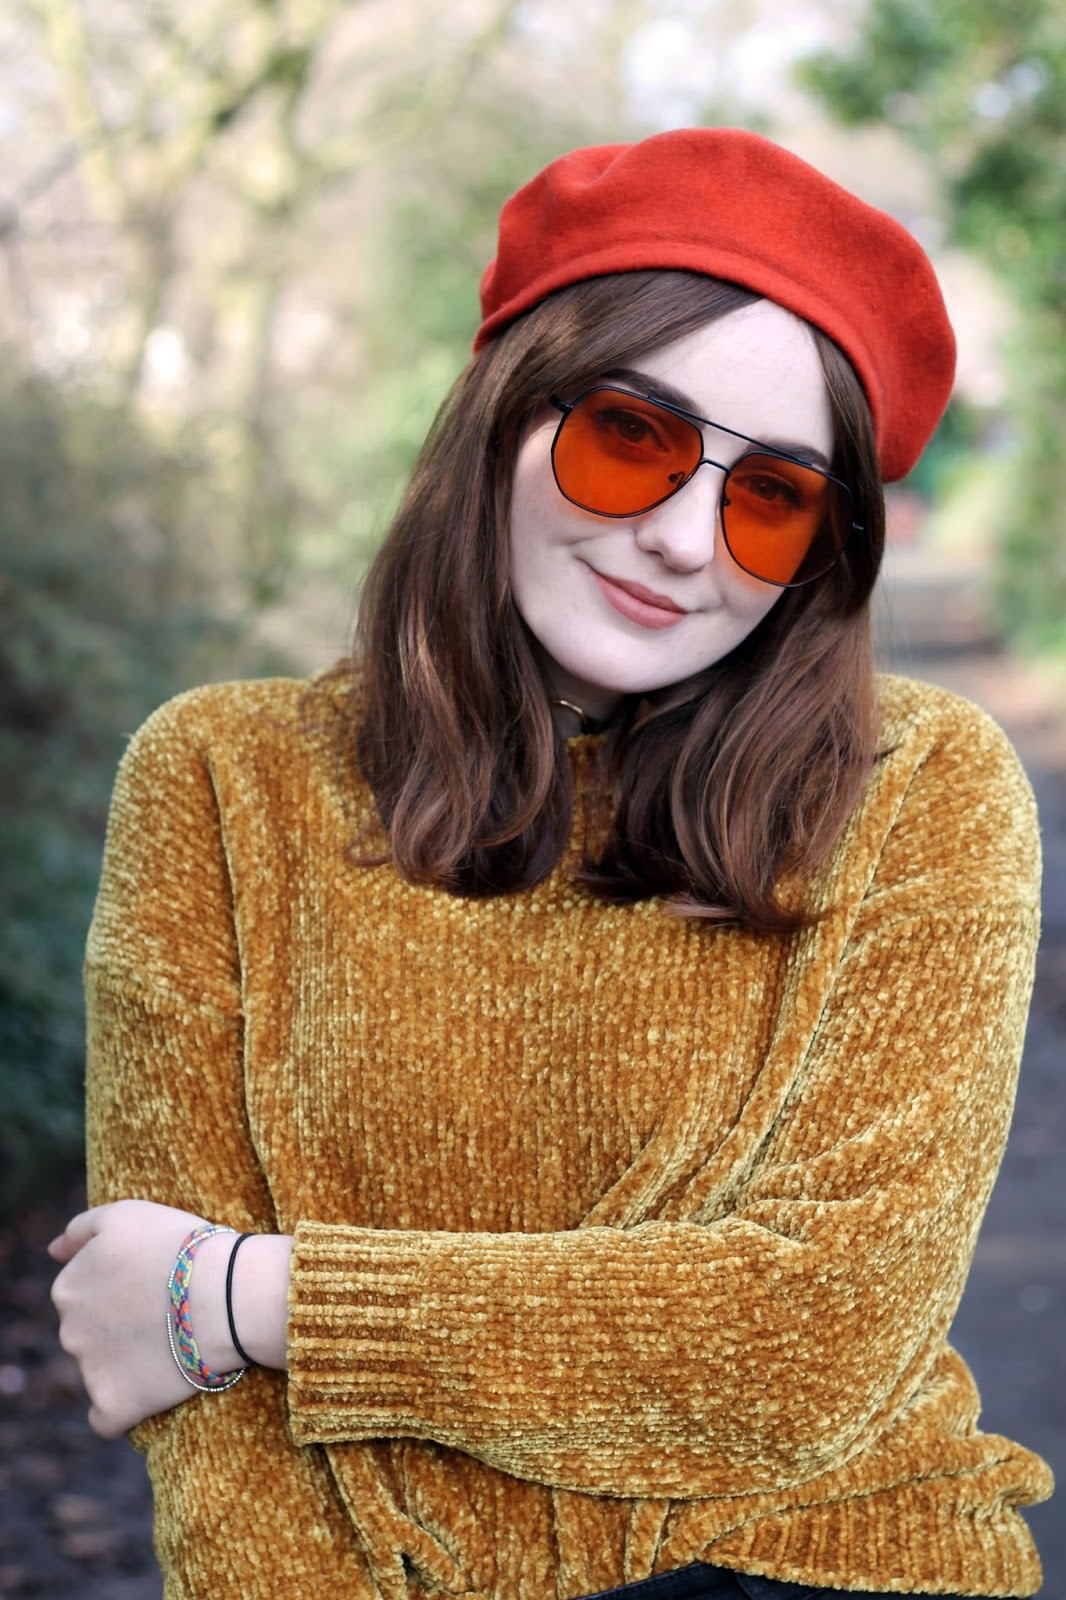 Liverpool style blogger wearing burned orange vintage Mary Quant beret, orange tint aviator sunglasses with black metal frames and mustard chenille jumper